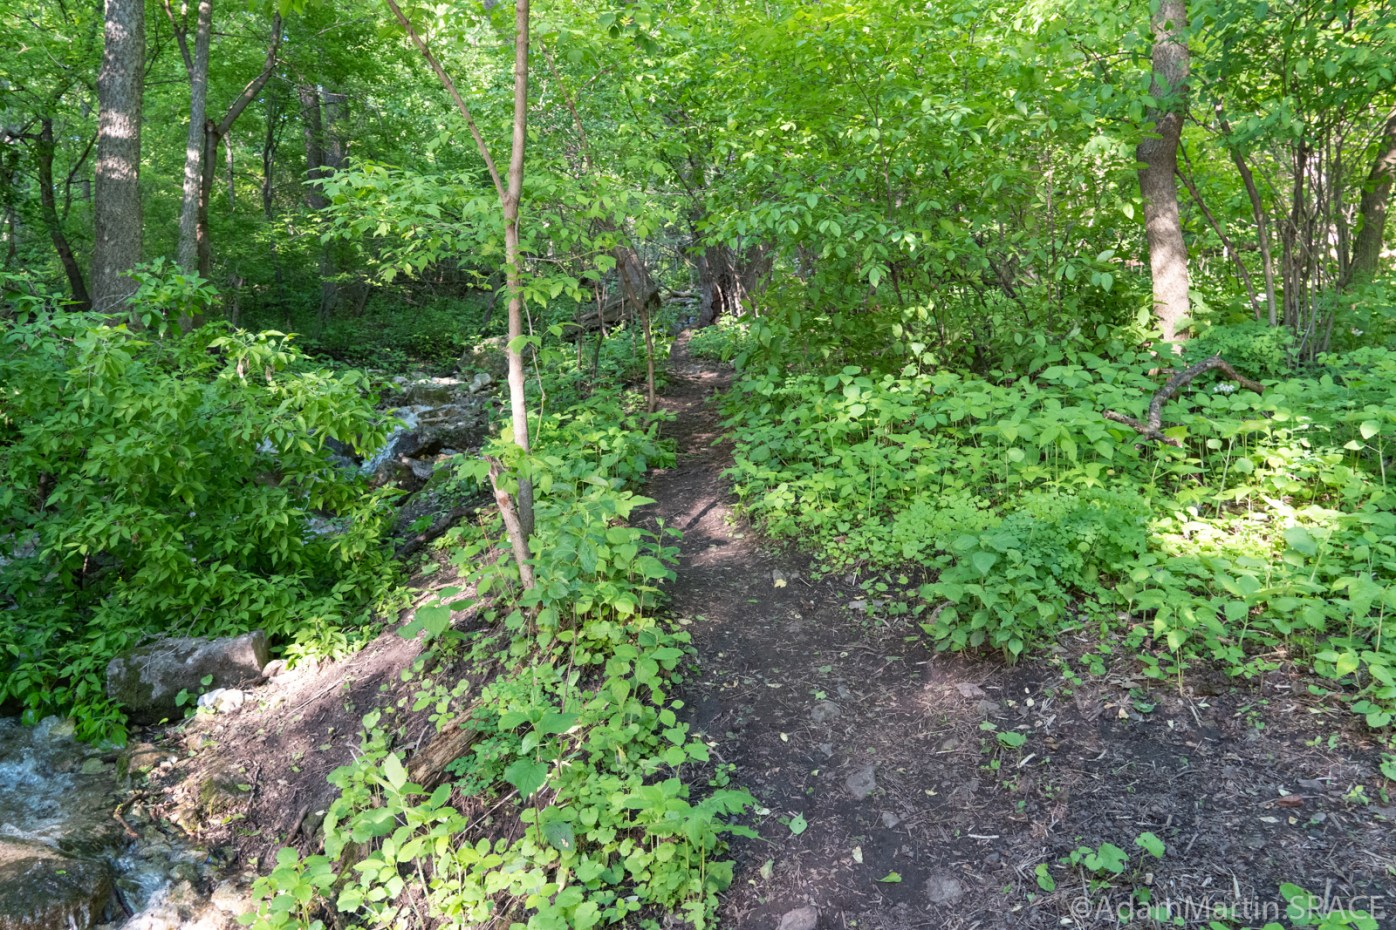 High Cliff State Park - Right-hand incorrect path heading up Lime Kiln Falls (Upper)